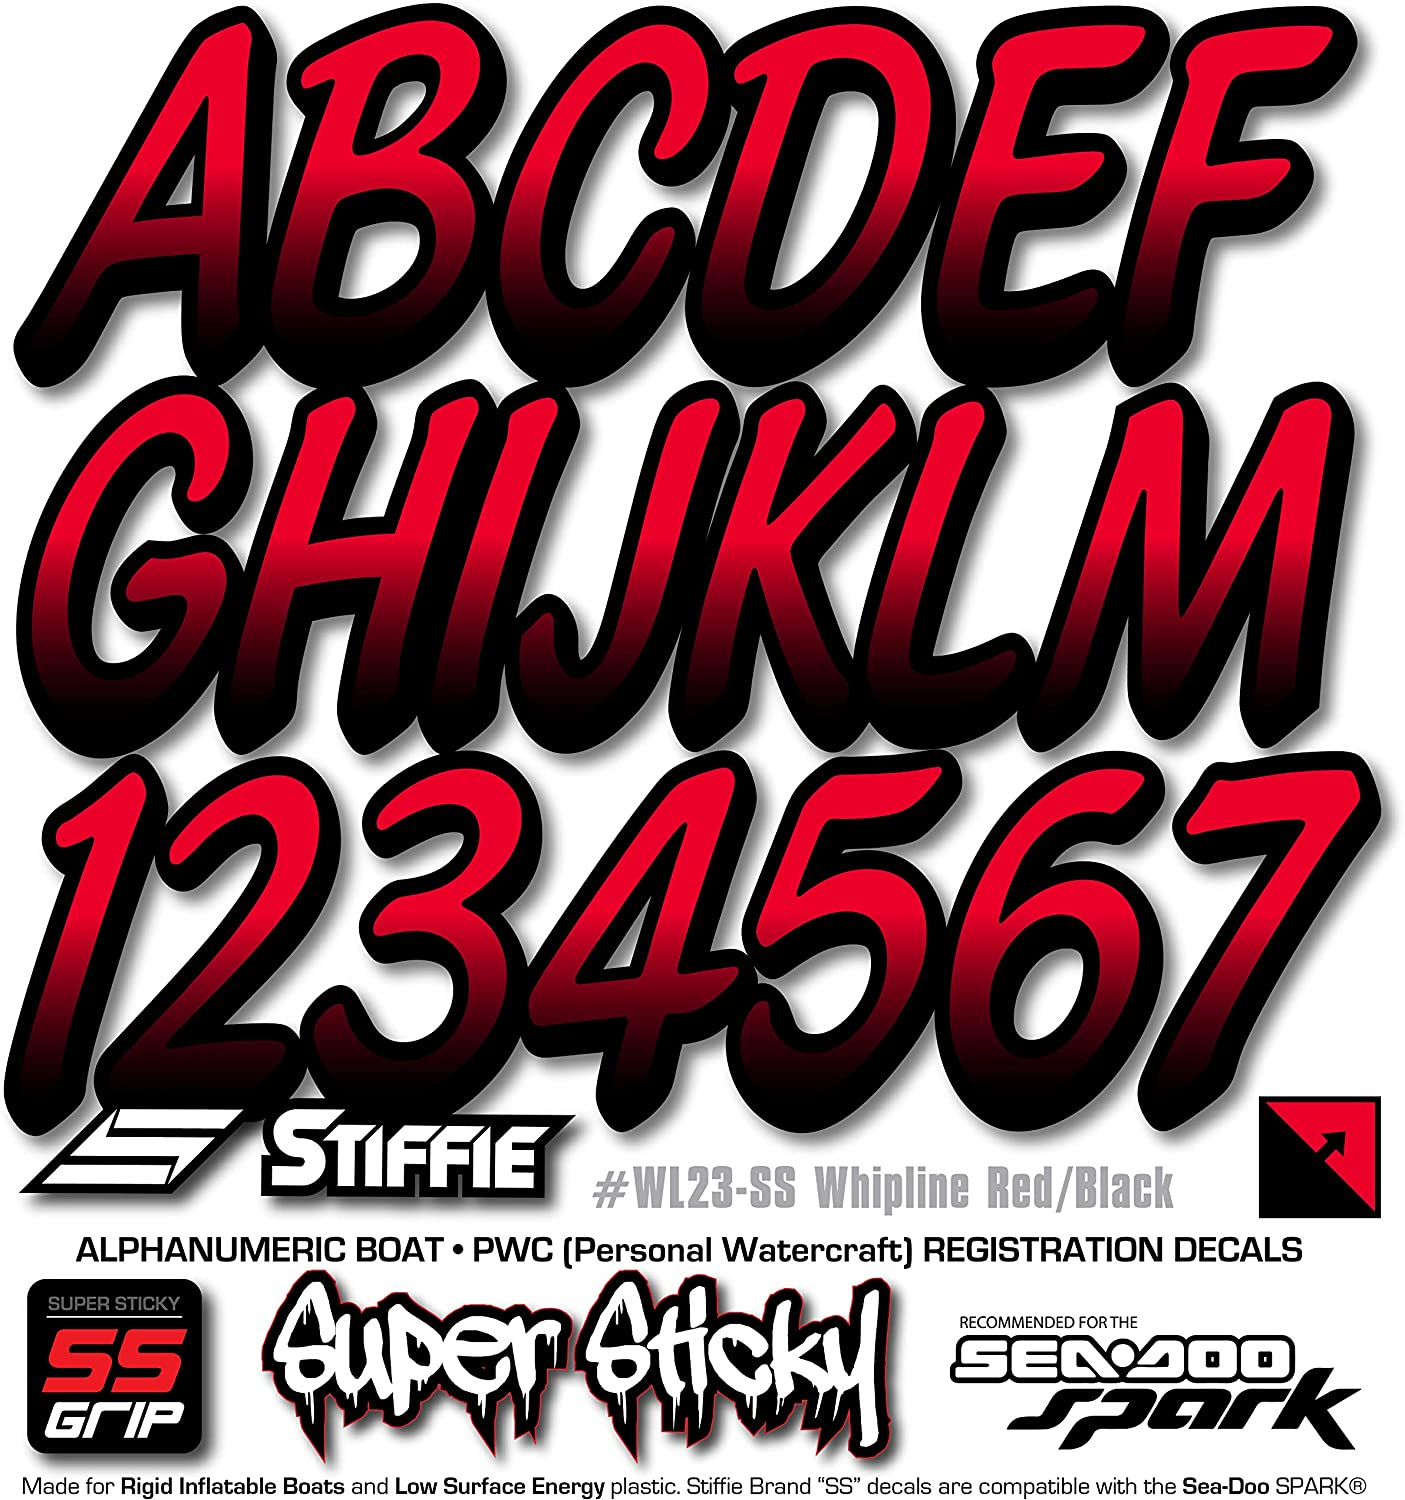 Stiffie Whipline Red//Black 3 Alpha-Numeric Registration Identification Numbers Stickers Decals for Boats /& Personal Watercraft